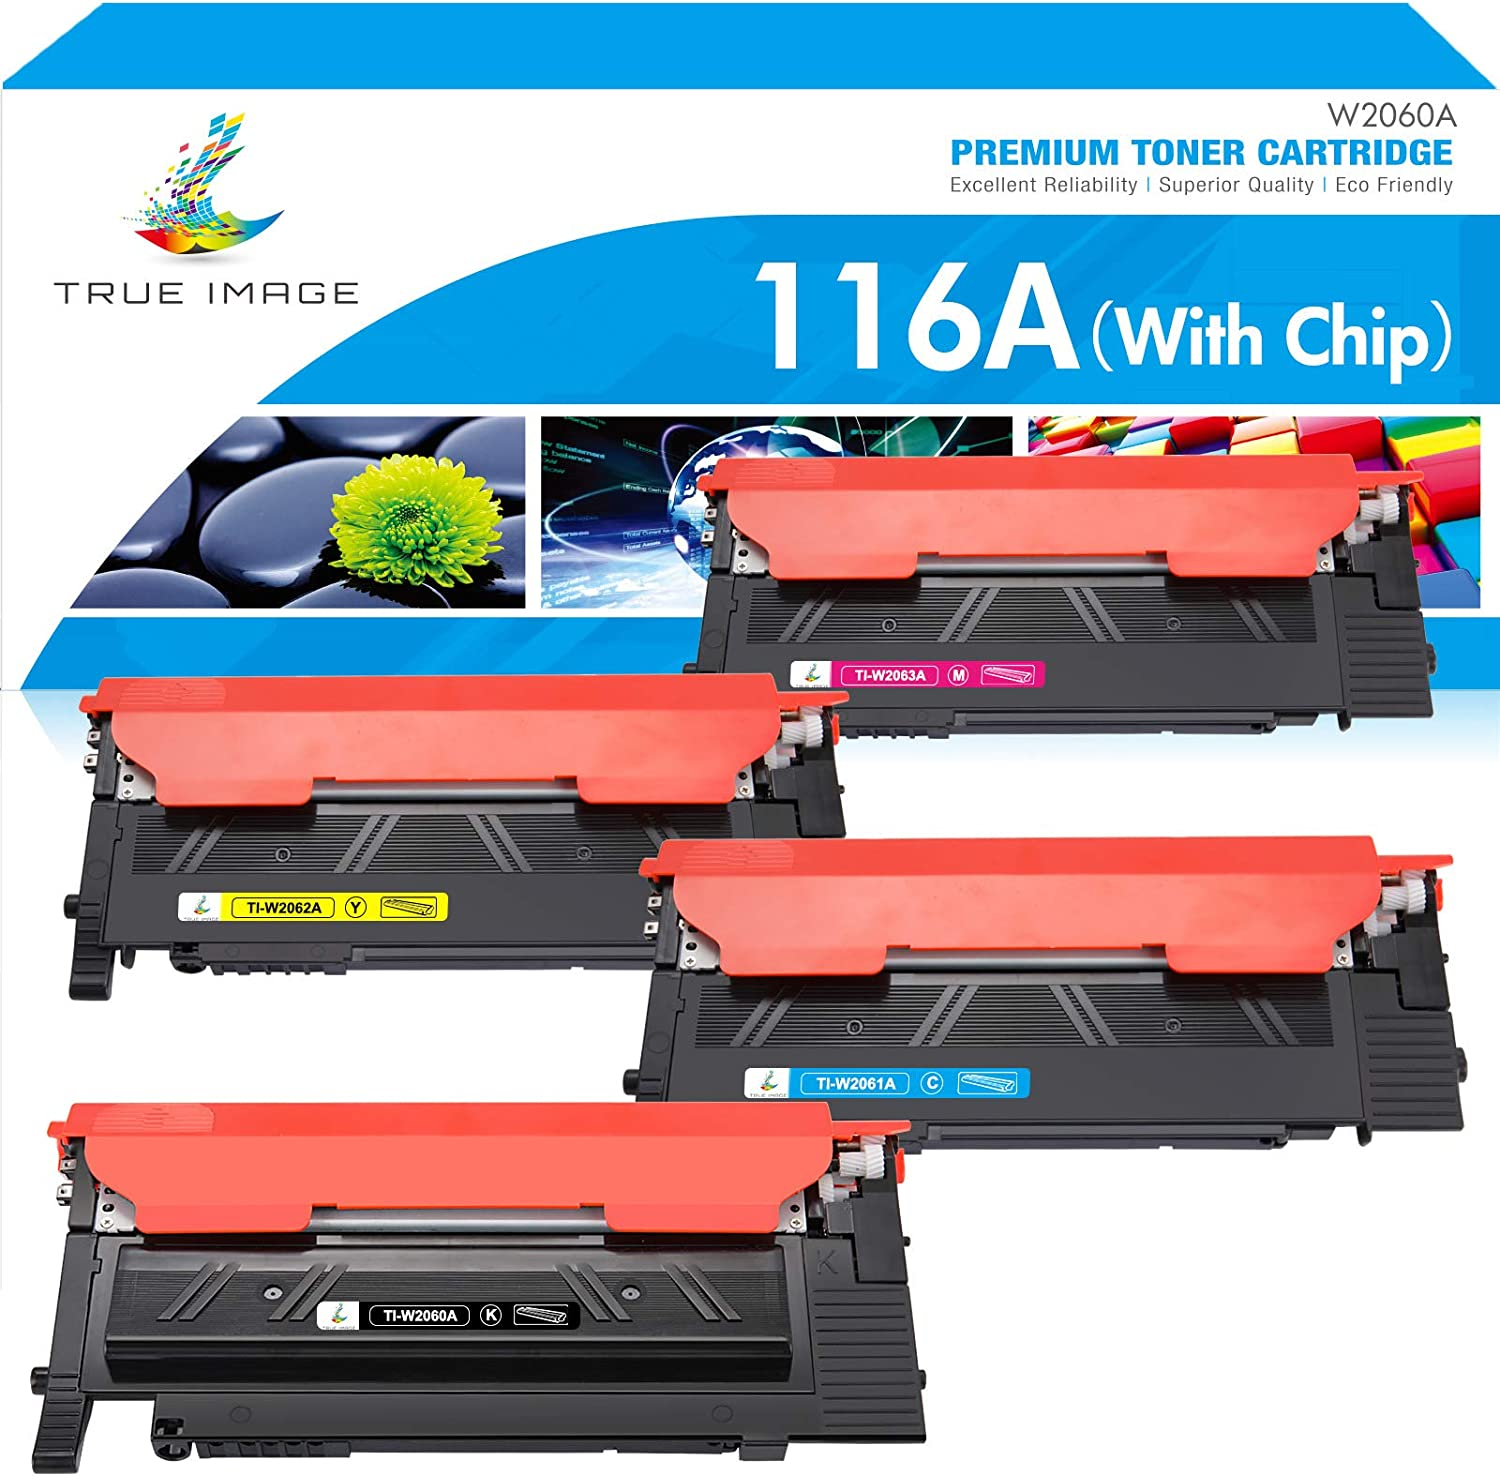 True Image Compatible Toner Cartridge Replacement for HP 116A W2060A HP Color Laser MFP 178nw 179fnw 178nwg 179fwg 150a 150nw W2061A W2062A W2063A Printer (Black Cyan Yellow Magenta, With Chip, 4Pack)